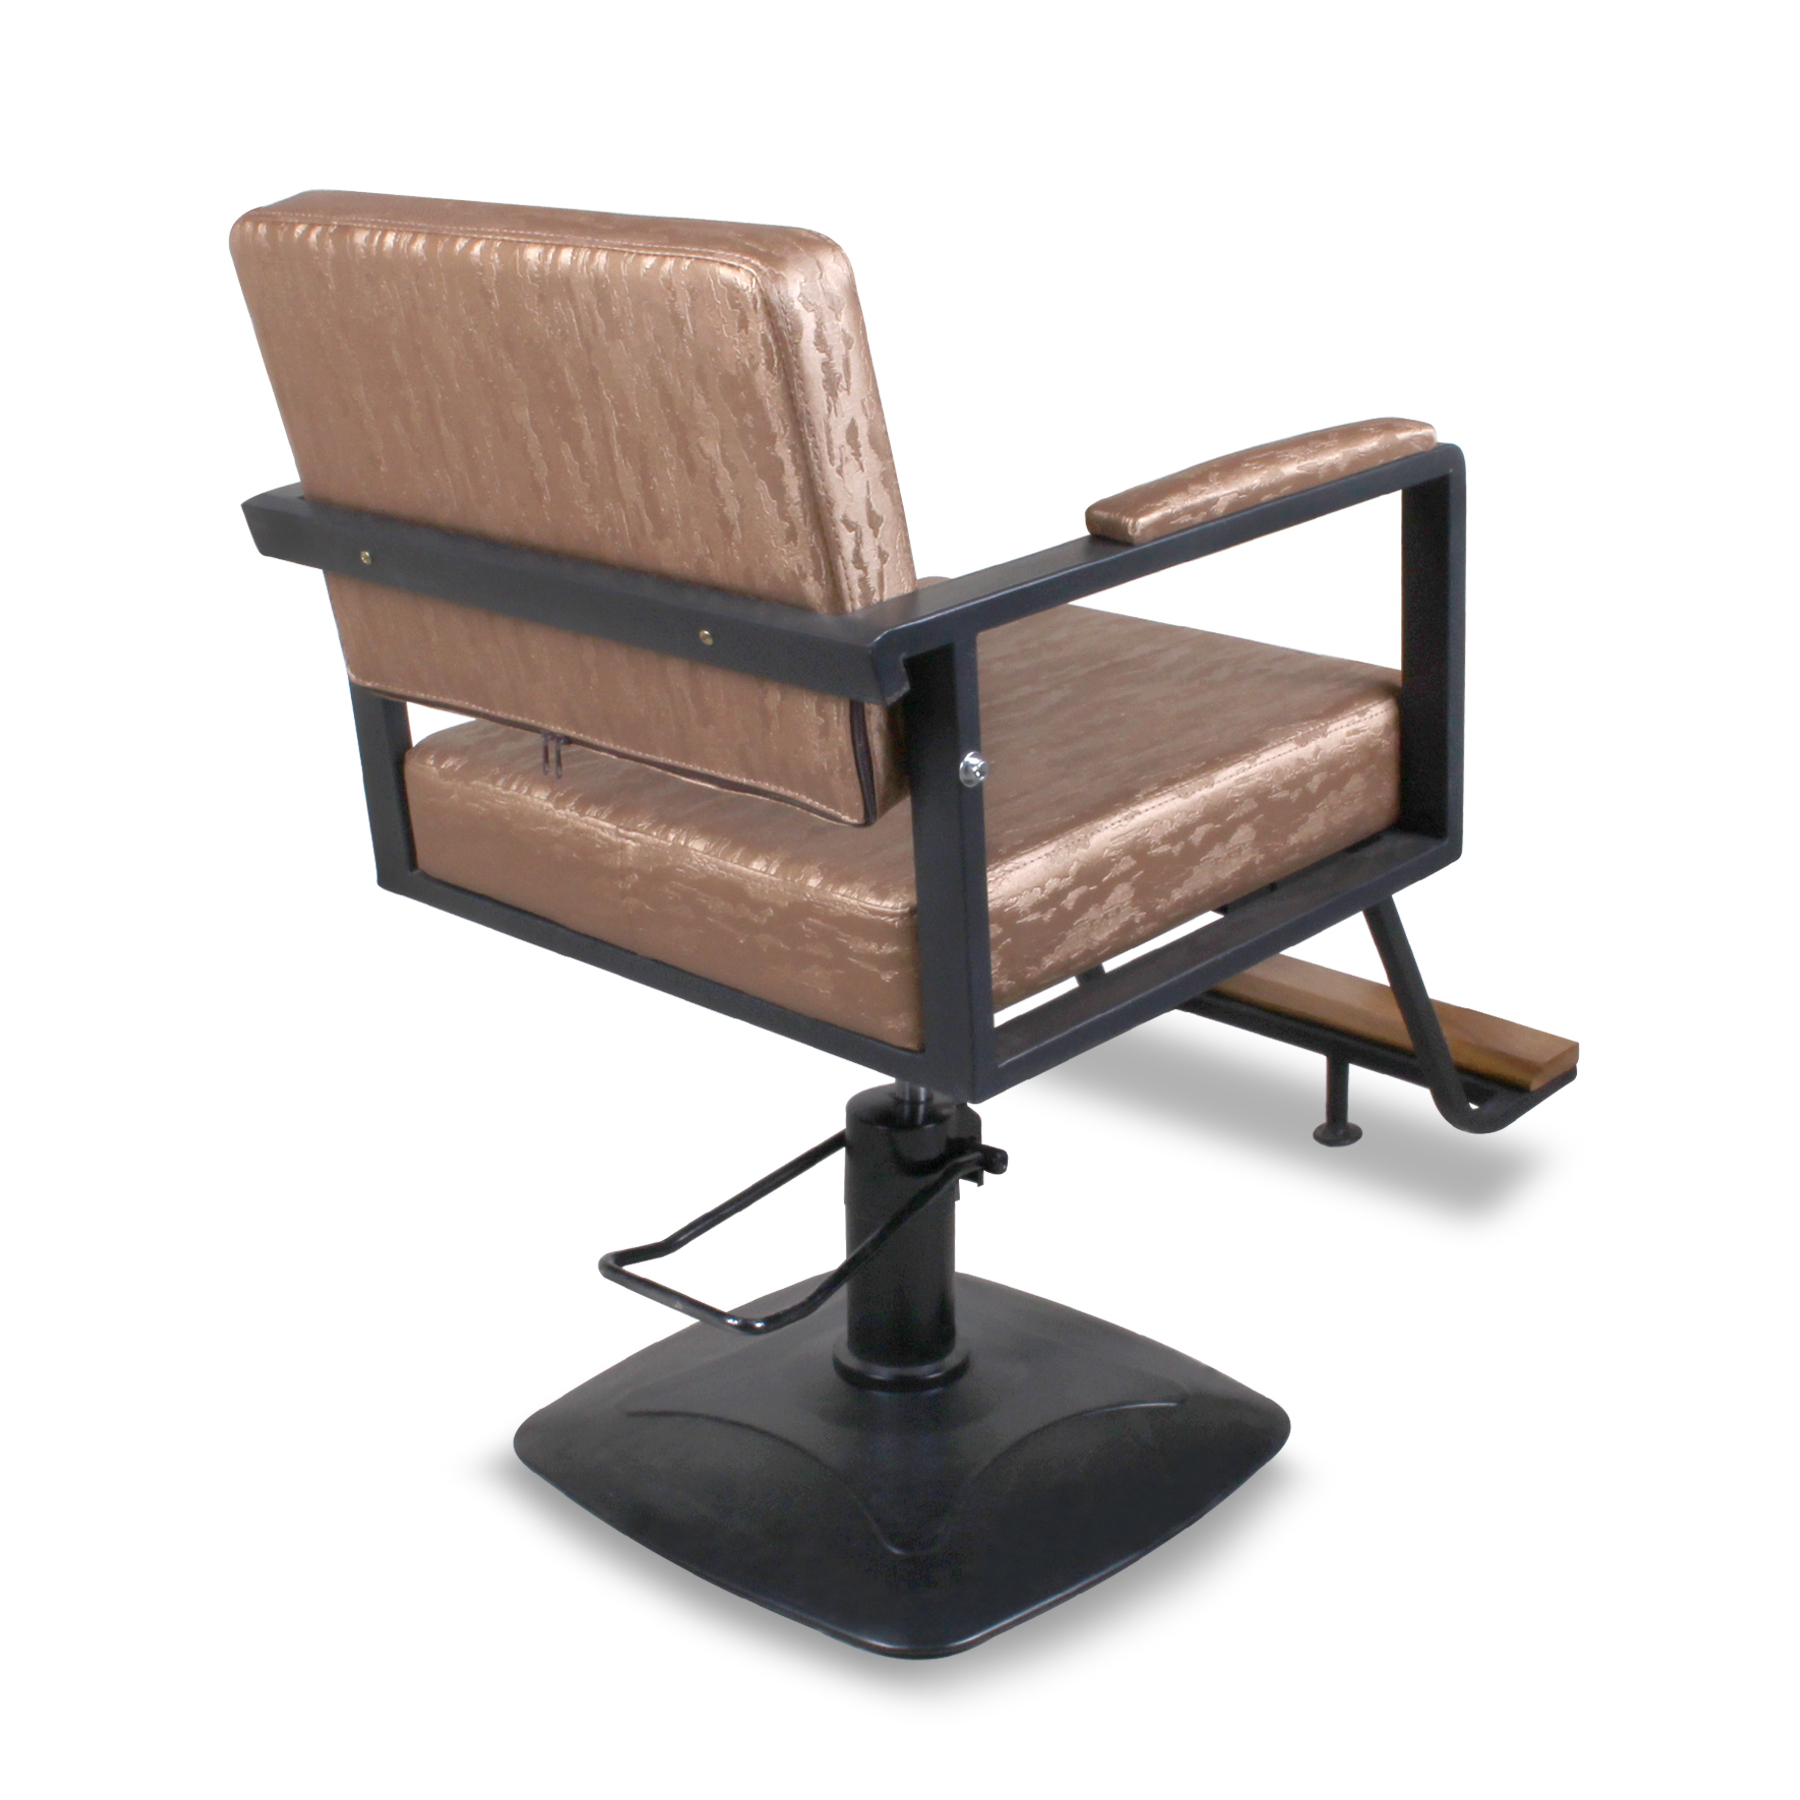 tattooing chairs for sale floating water gold modern metal salon barbers barber chair styling